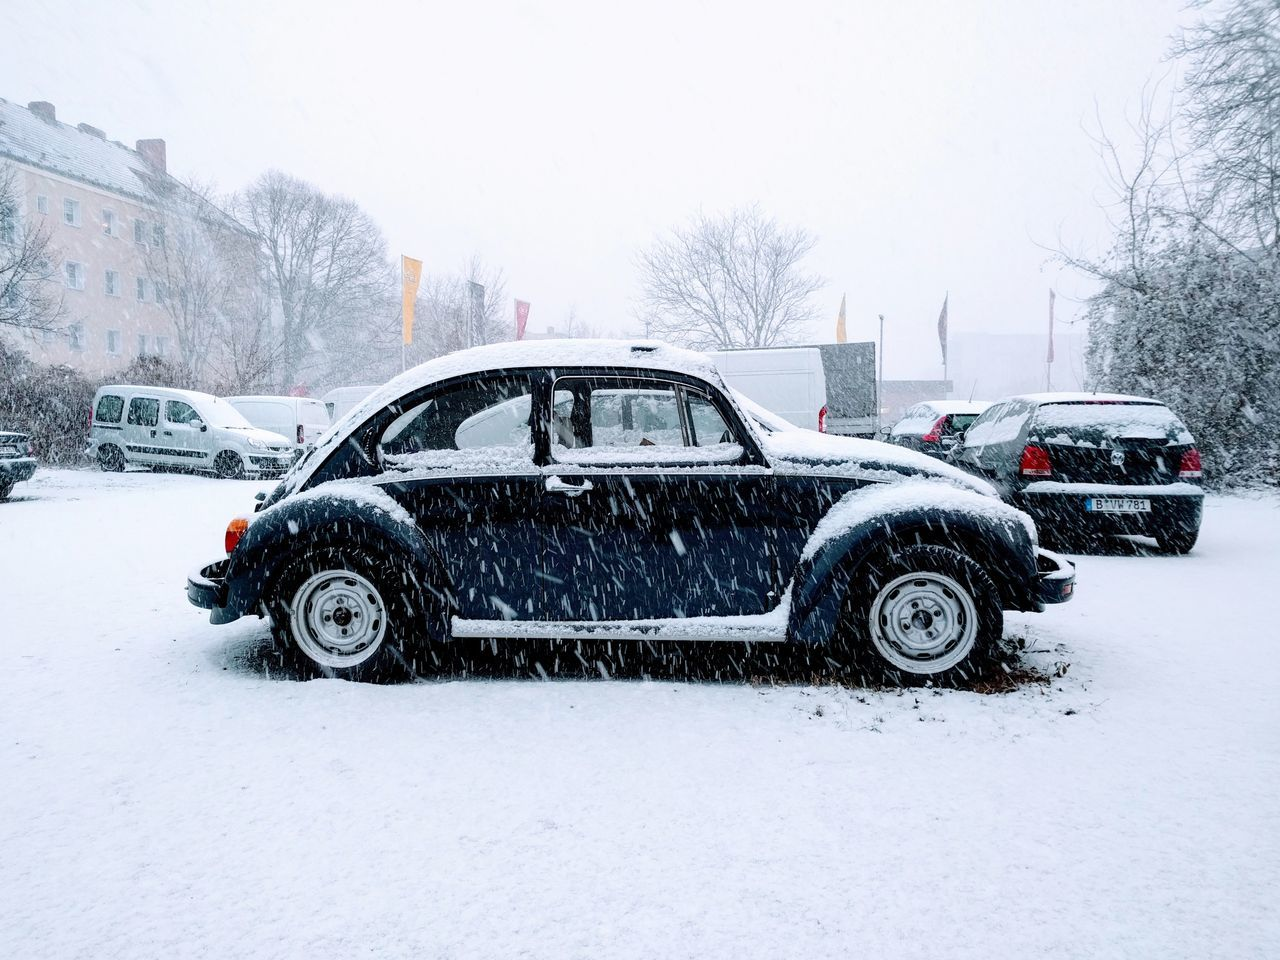 Das Auto  VW Beetle VW Käfer Transportation Wet Mode Of Transport Snow Snowing Winter Tire Driving No People Cold Temperature Slippery Nature Close-up Day VW Car Classic Classic Car Oldtimer Winter Wonderland Berlin First Snow